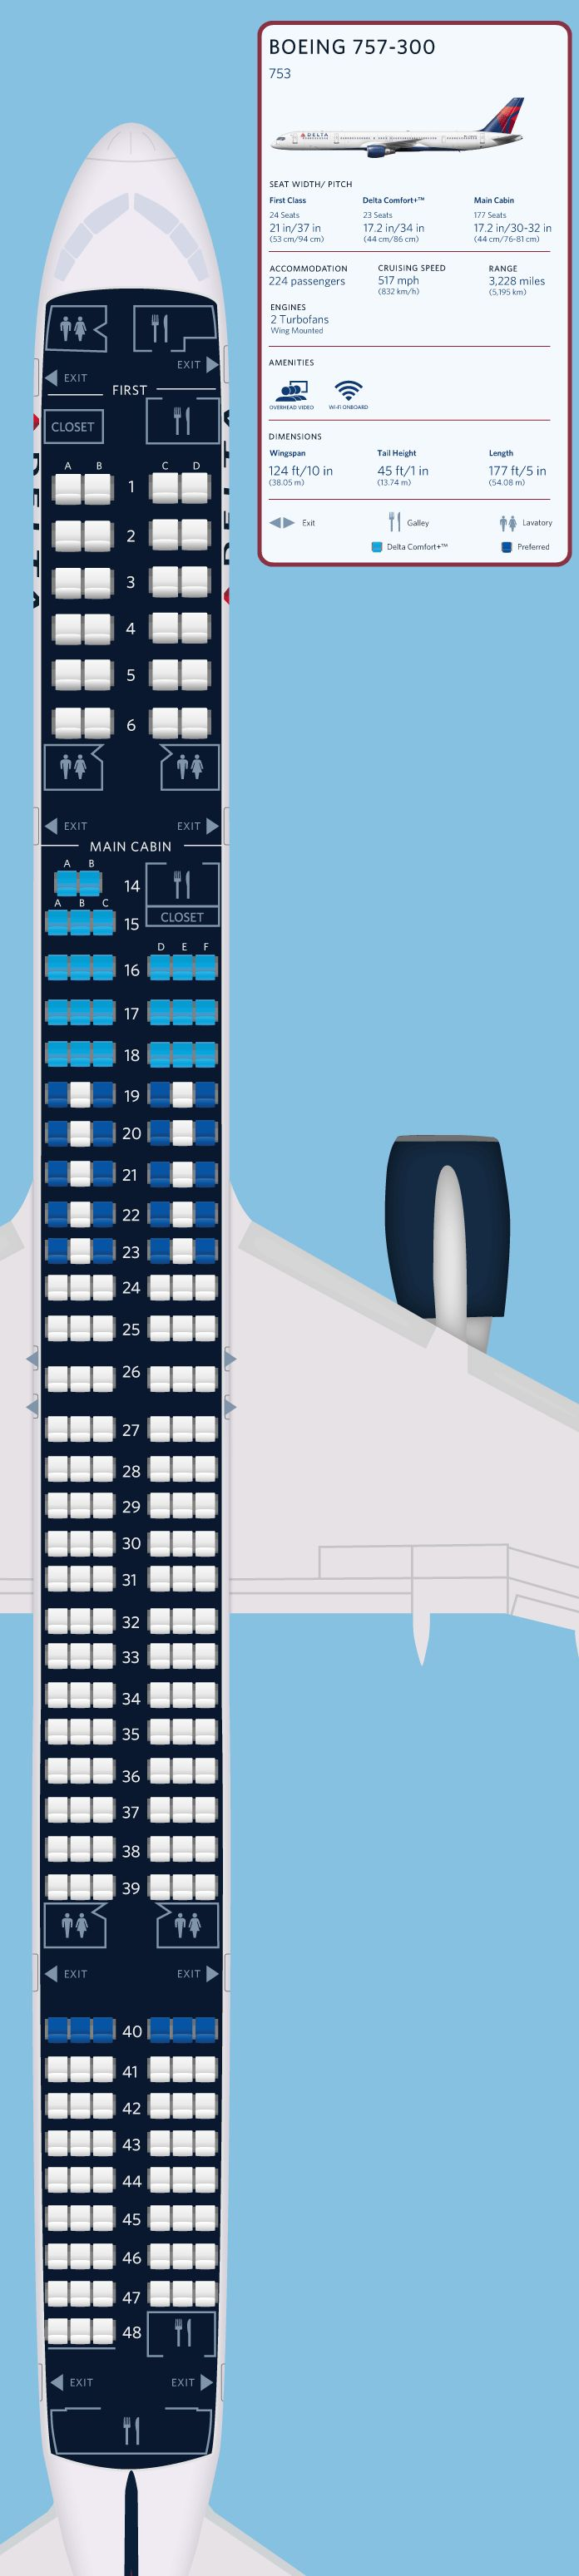 Boeing 757300 studious Pinterest Airports and Traveling